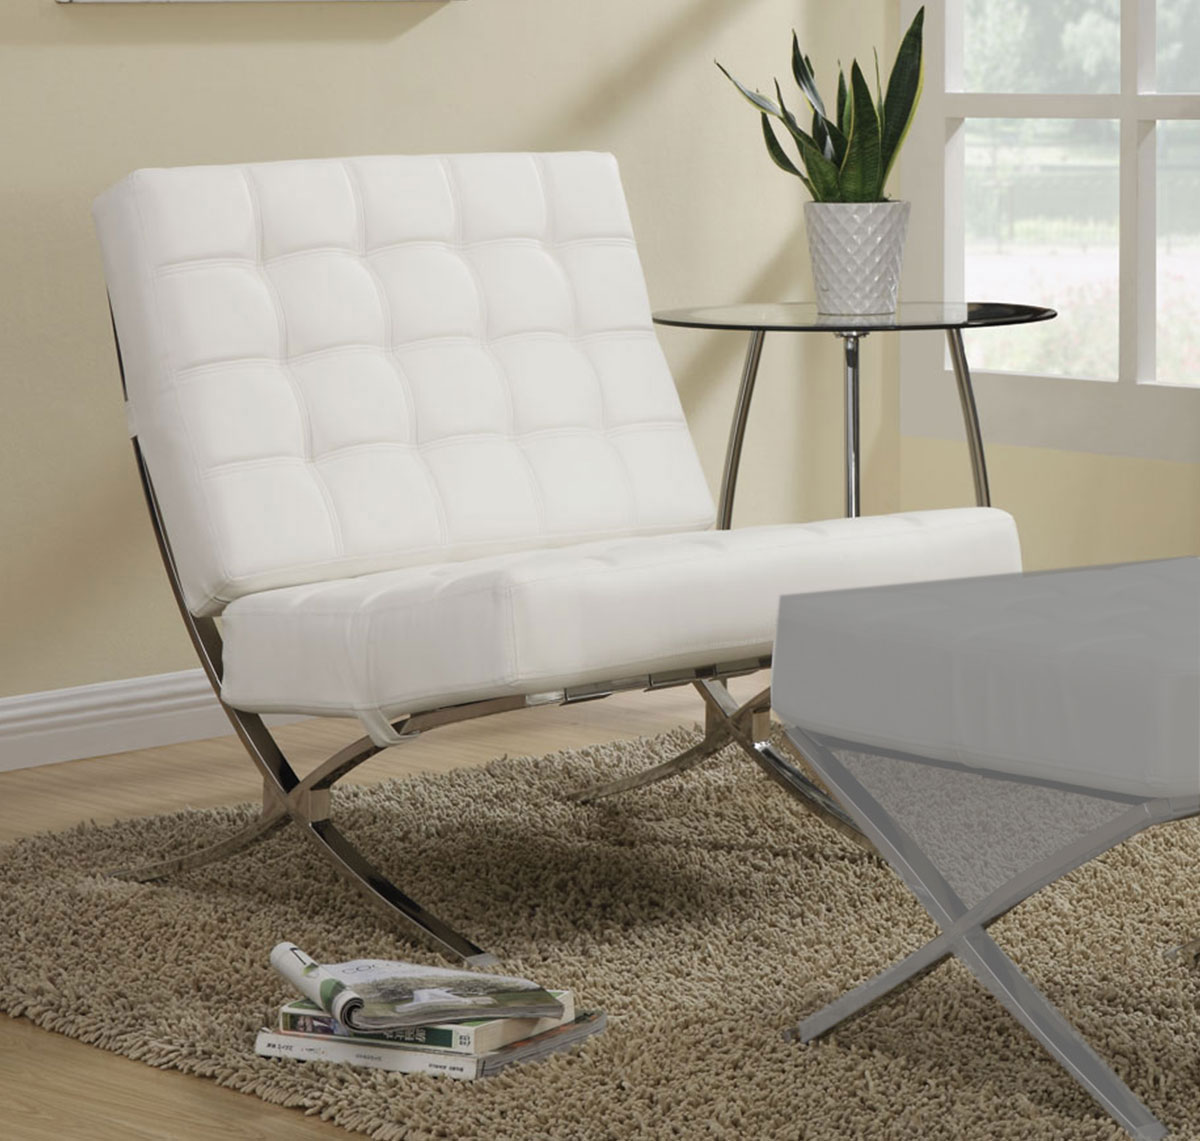 Coaster 902183 Accent Chair - White/Chrome